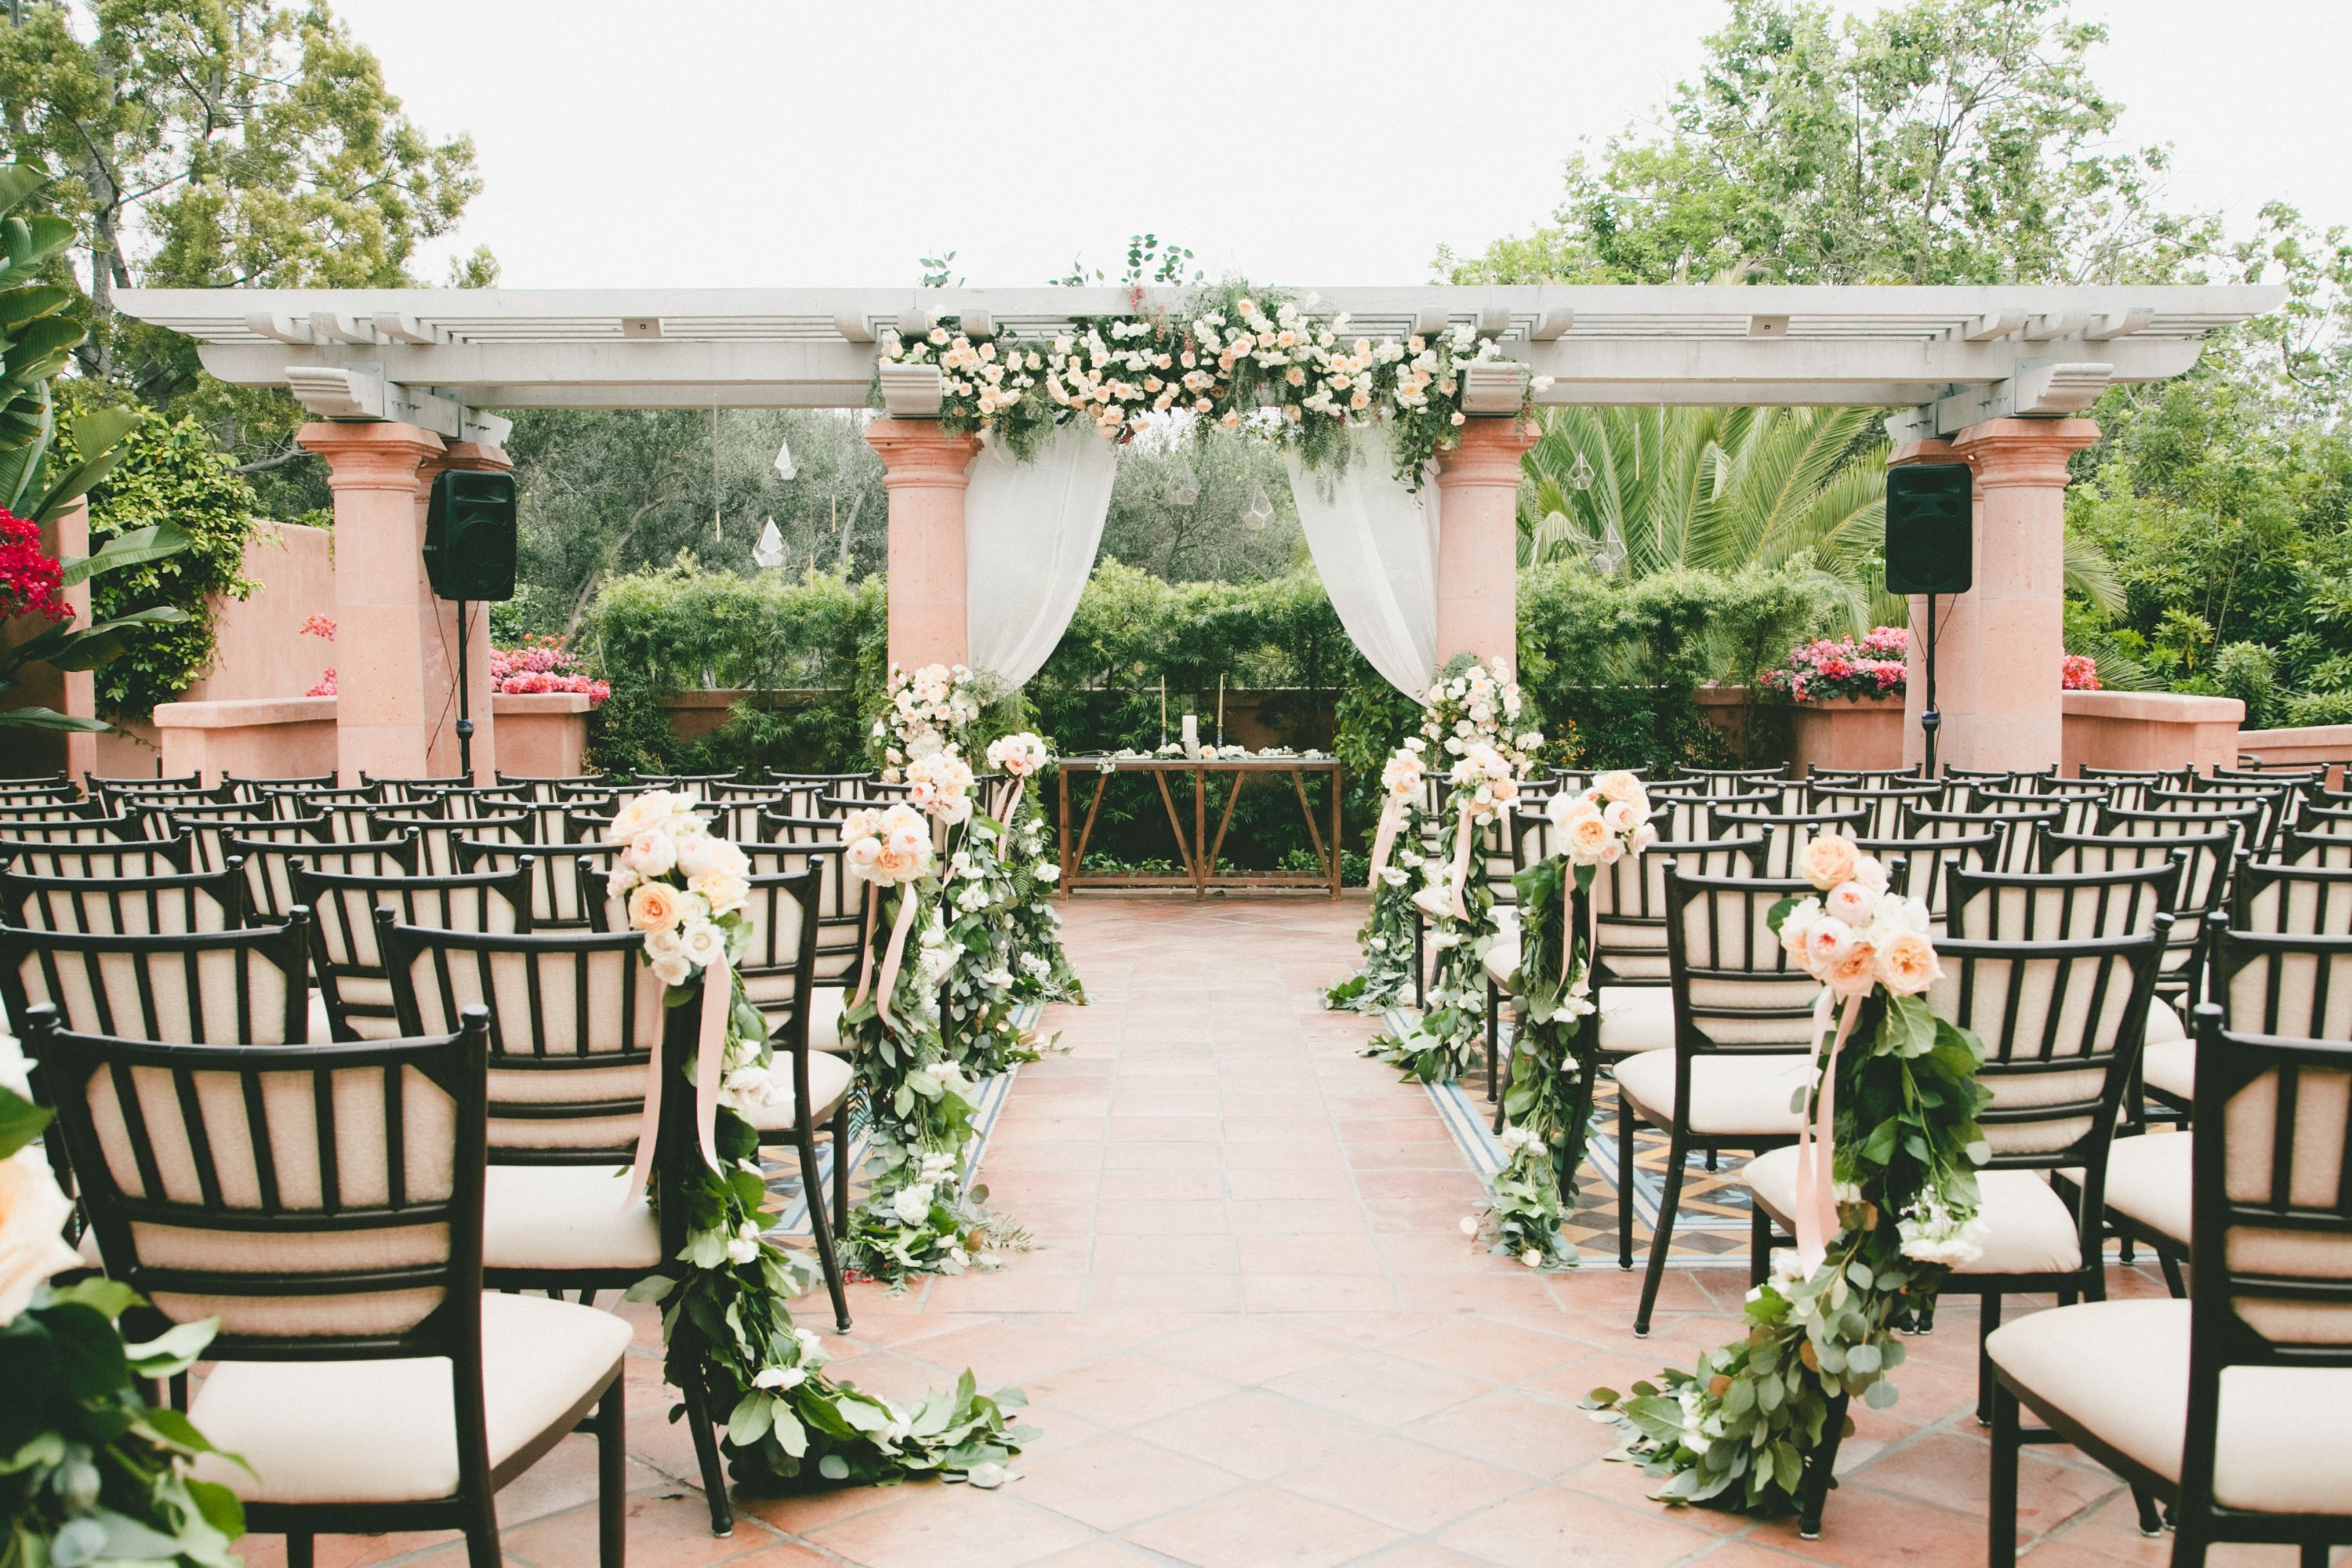 Outdoor garden wedding decoration ideas  Outdoor Garden Ceremony Under Pergola  Old Clarkston Theatre dream